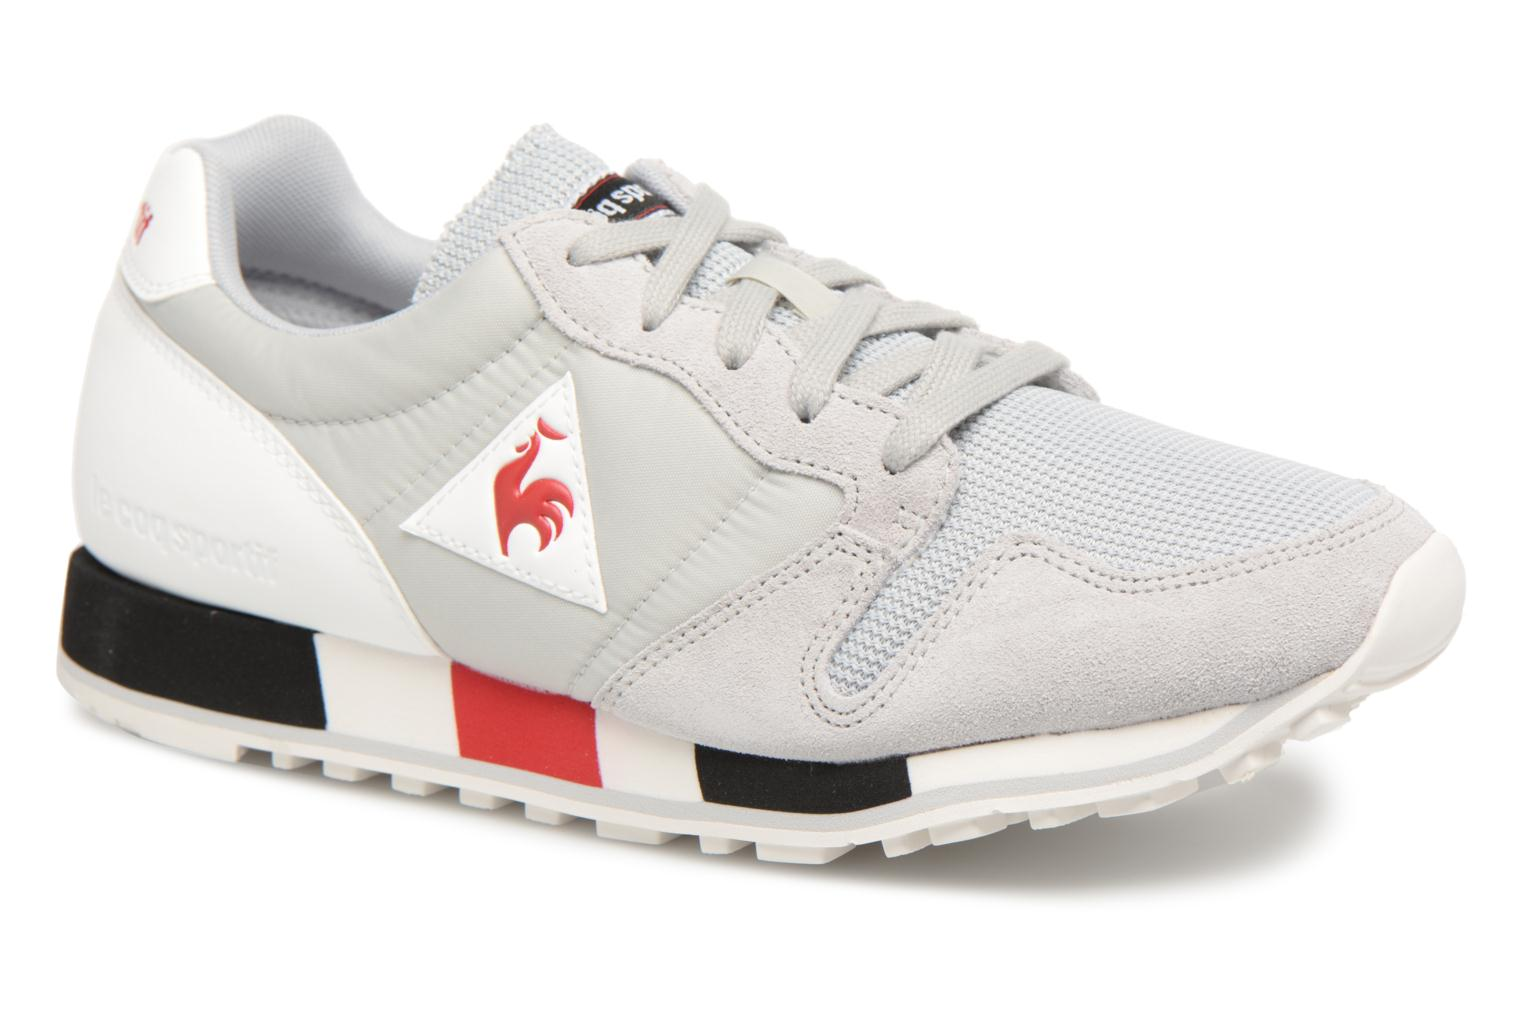 Marques Chaussure homme Le Coq Sportif homme Omega Nylon galet